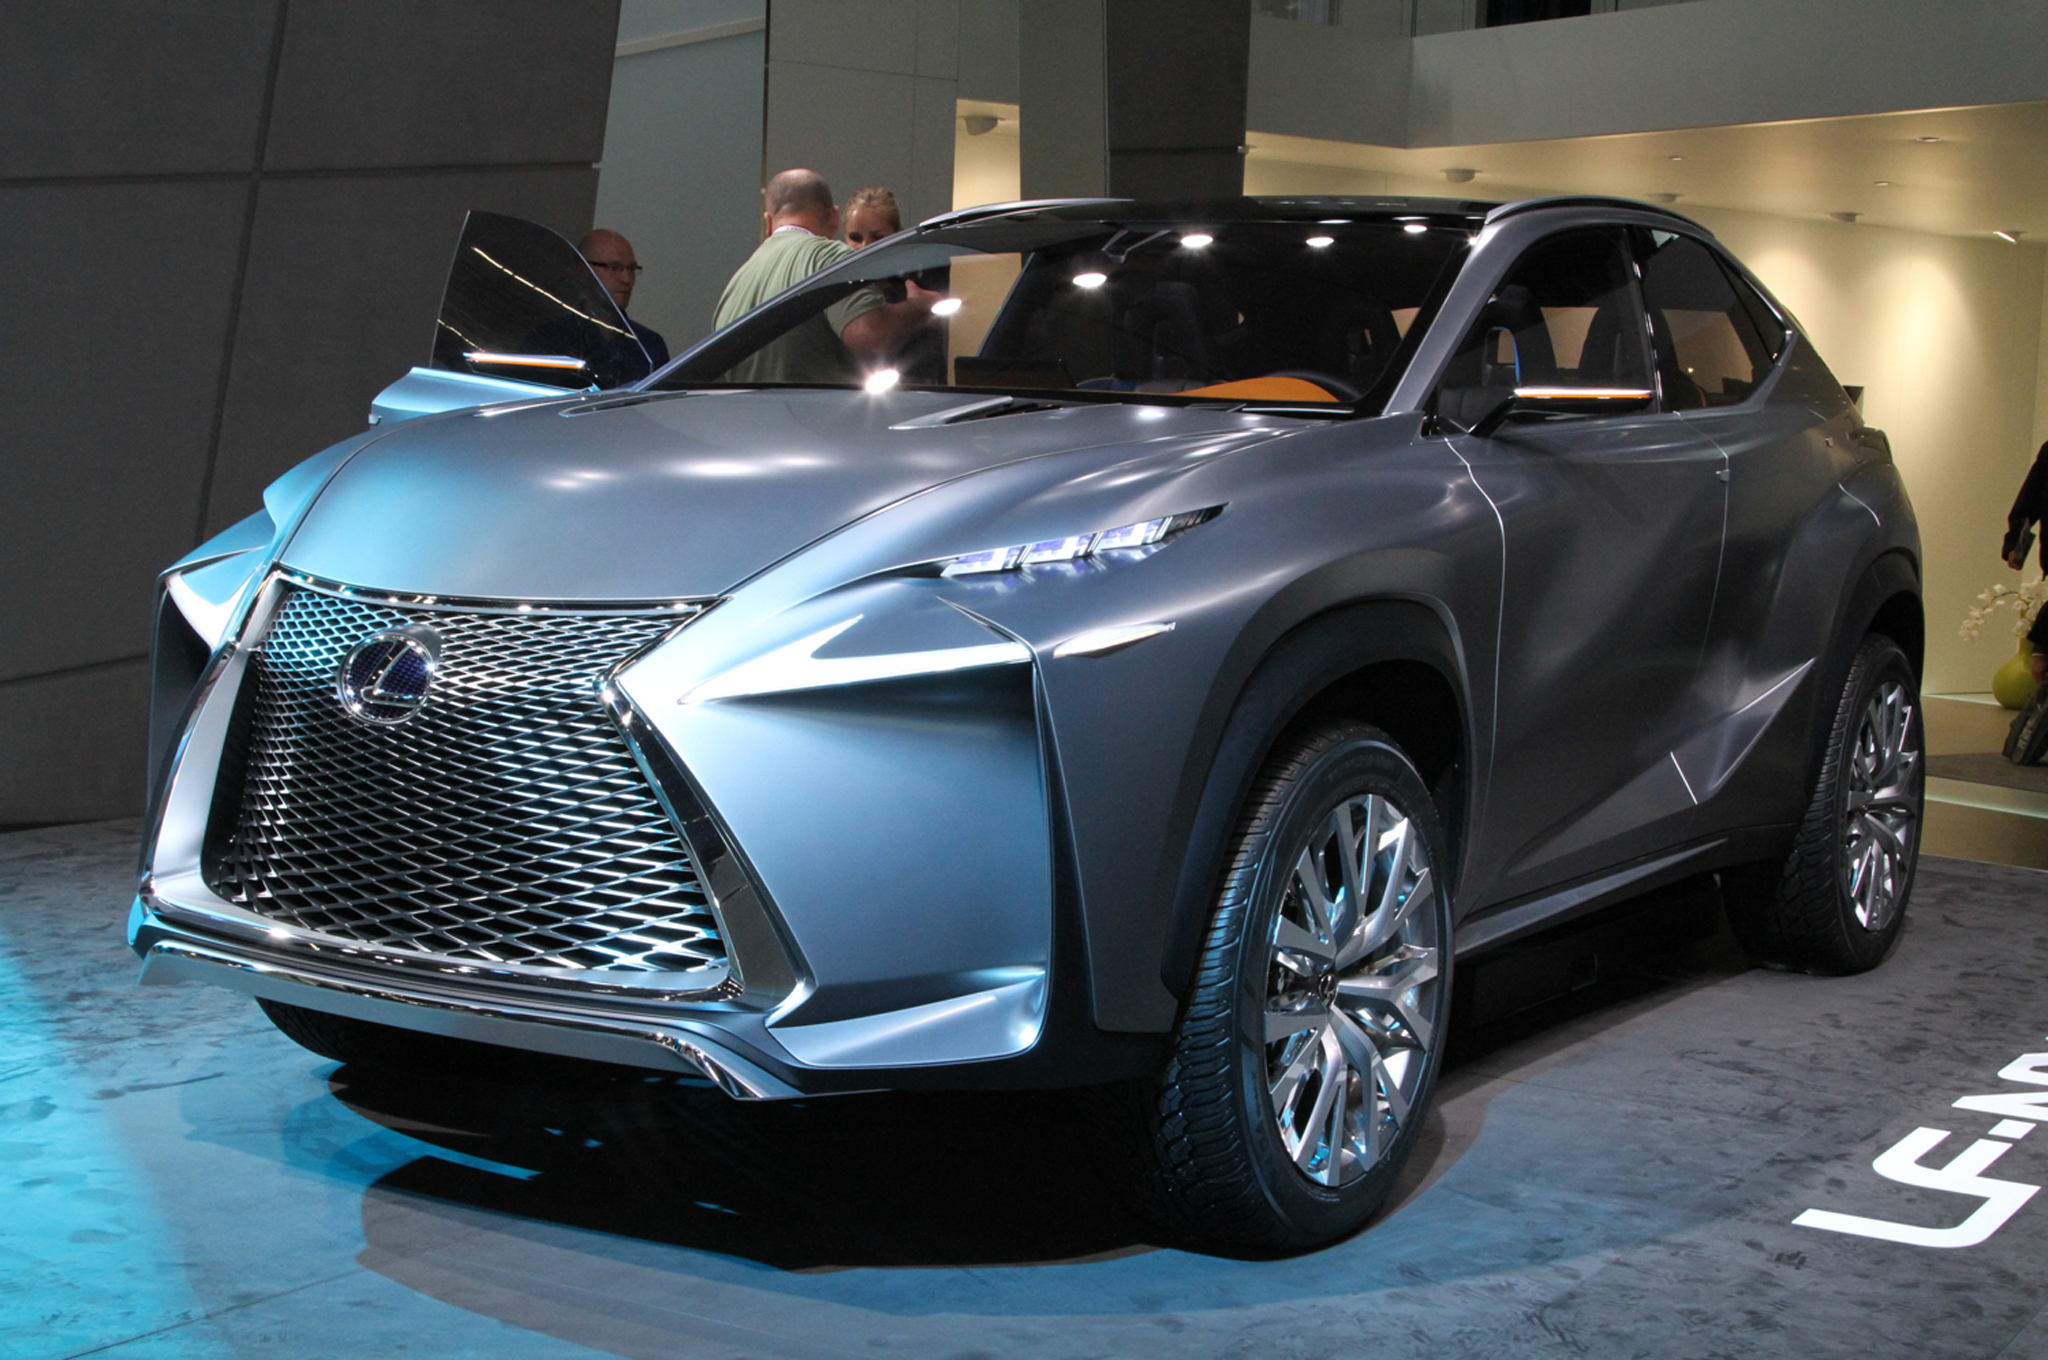 Marvelous Lexus LF NX Crossover Concept Revealed Before Frankfurt Show